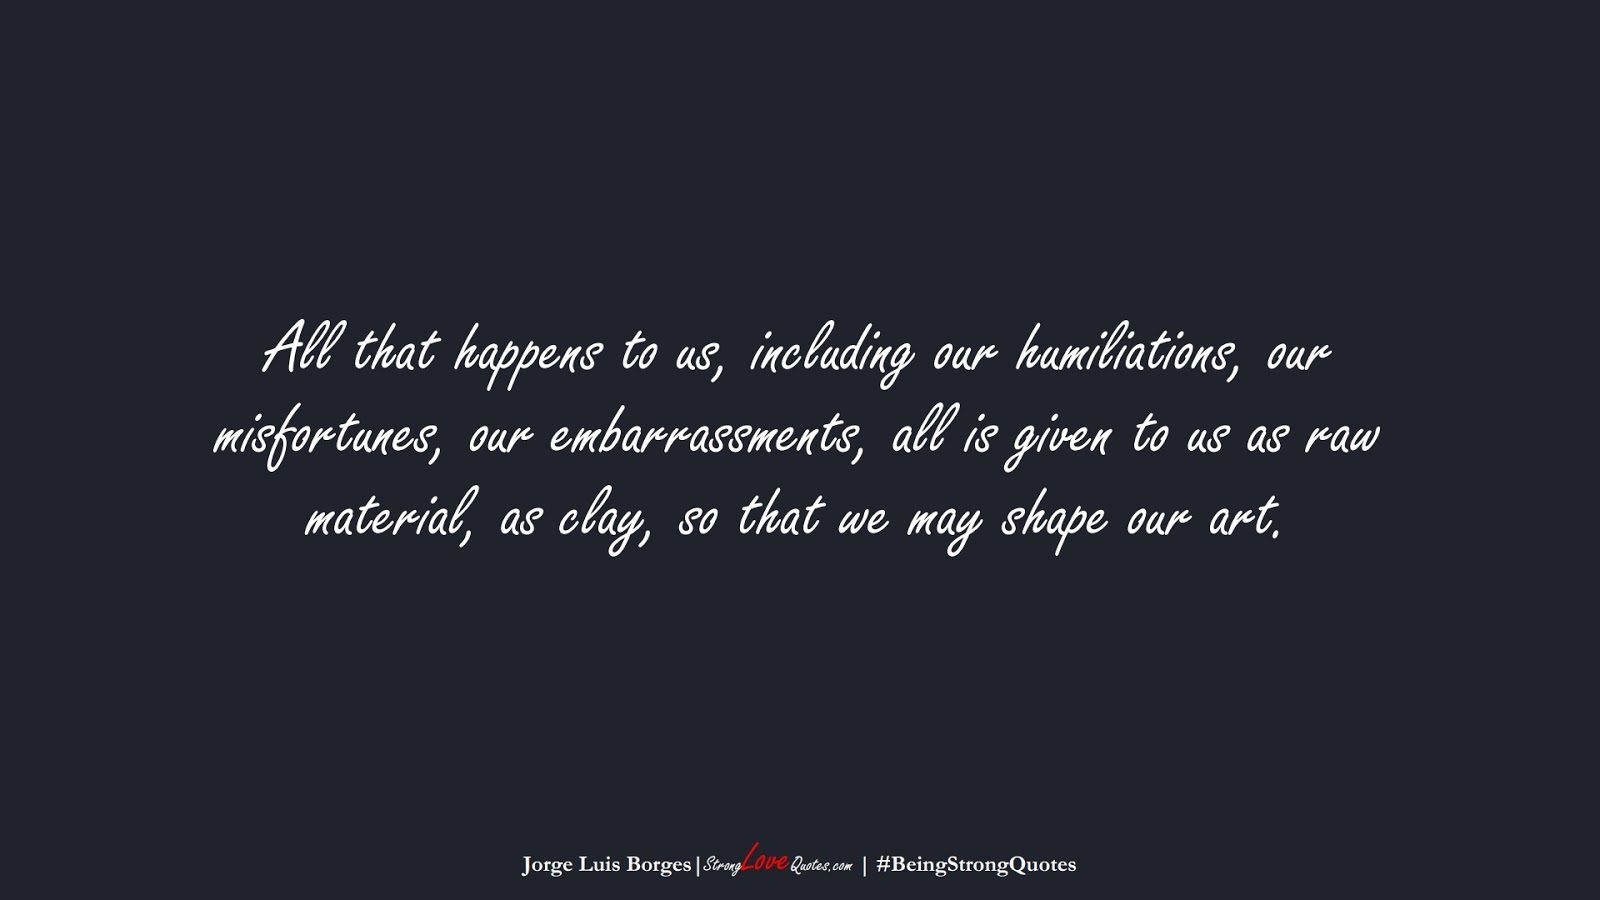 All that happens to us, including our humiliations, our misfortunes, our embarrassments, all is given to us as raw material, as clay, so that we may shape our art. (Jorge Luis Borges);  #BeingStrongQuotes